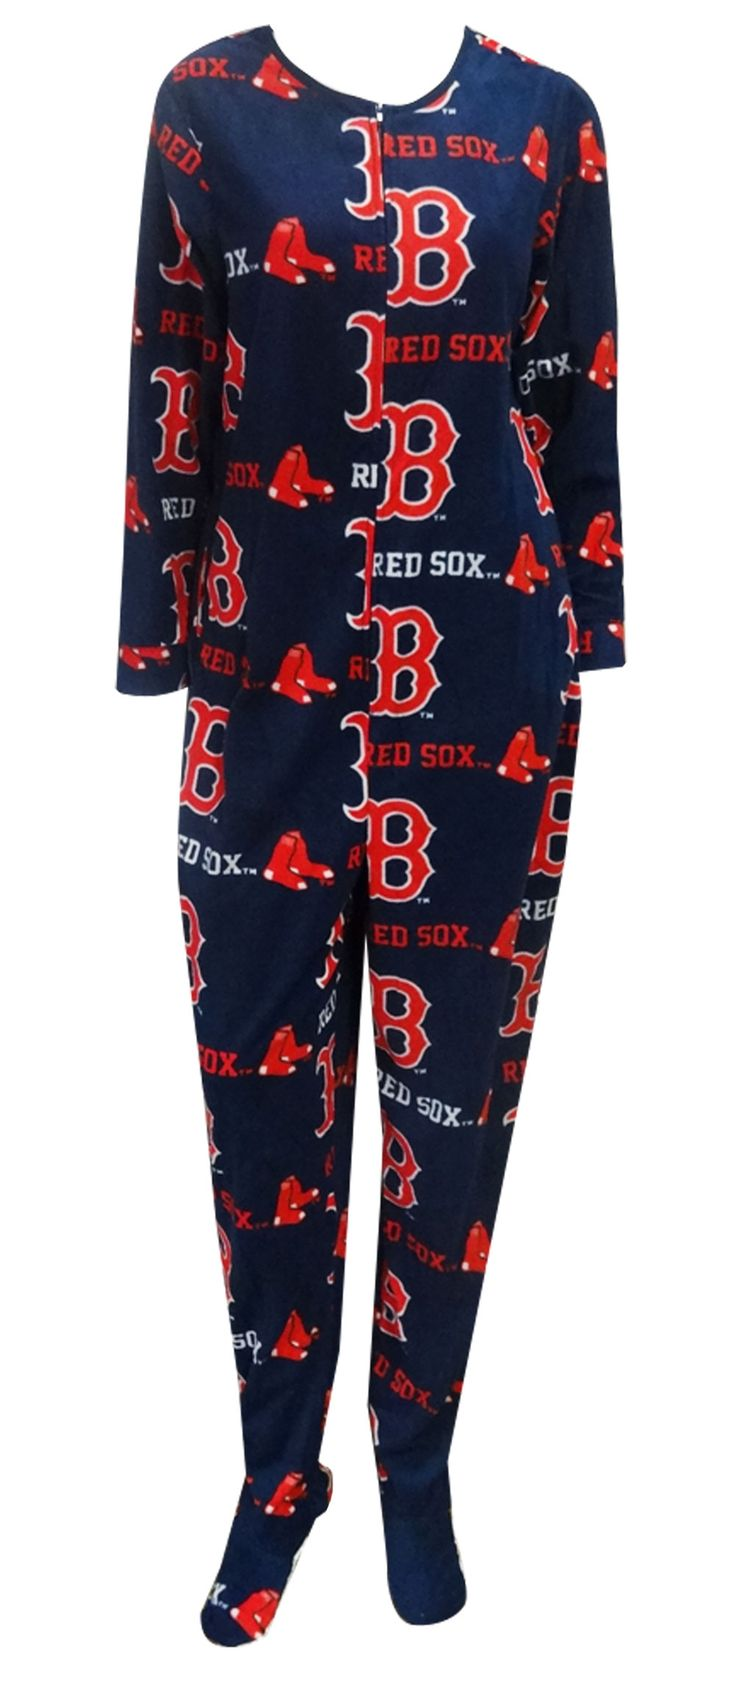 158 best boston red sox images on pinterest | boston red sox